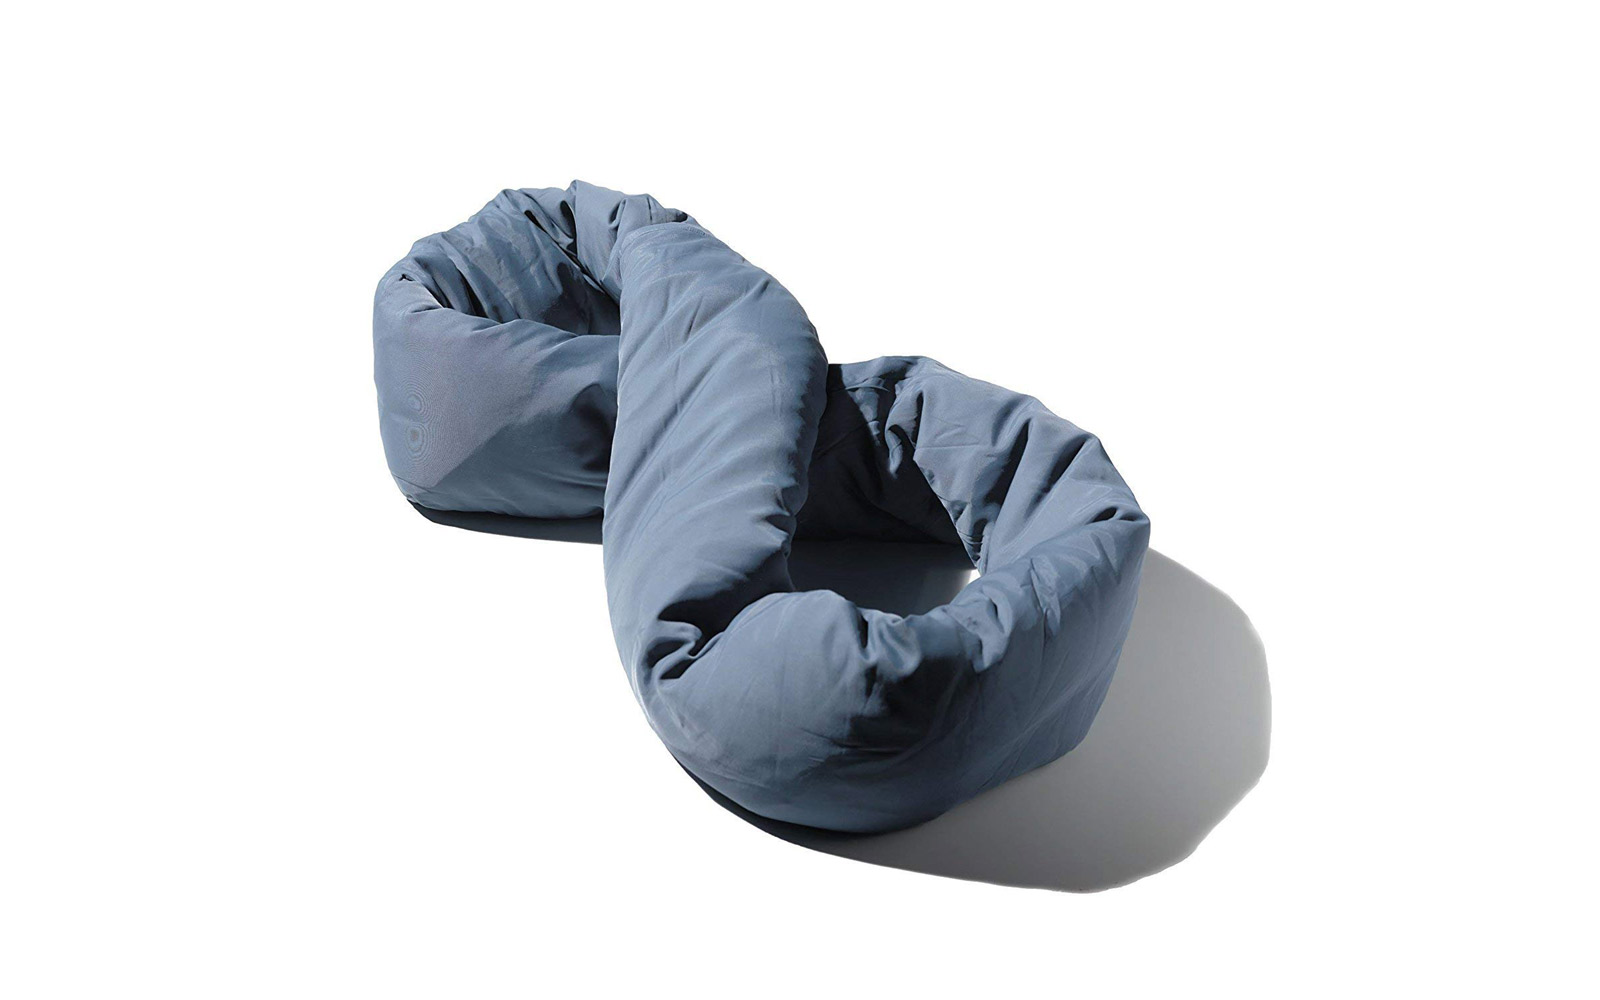 infinity travel pillow review